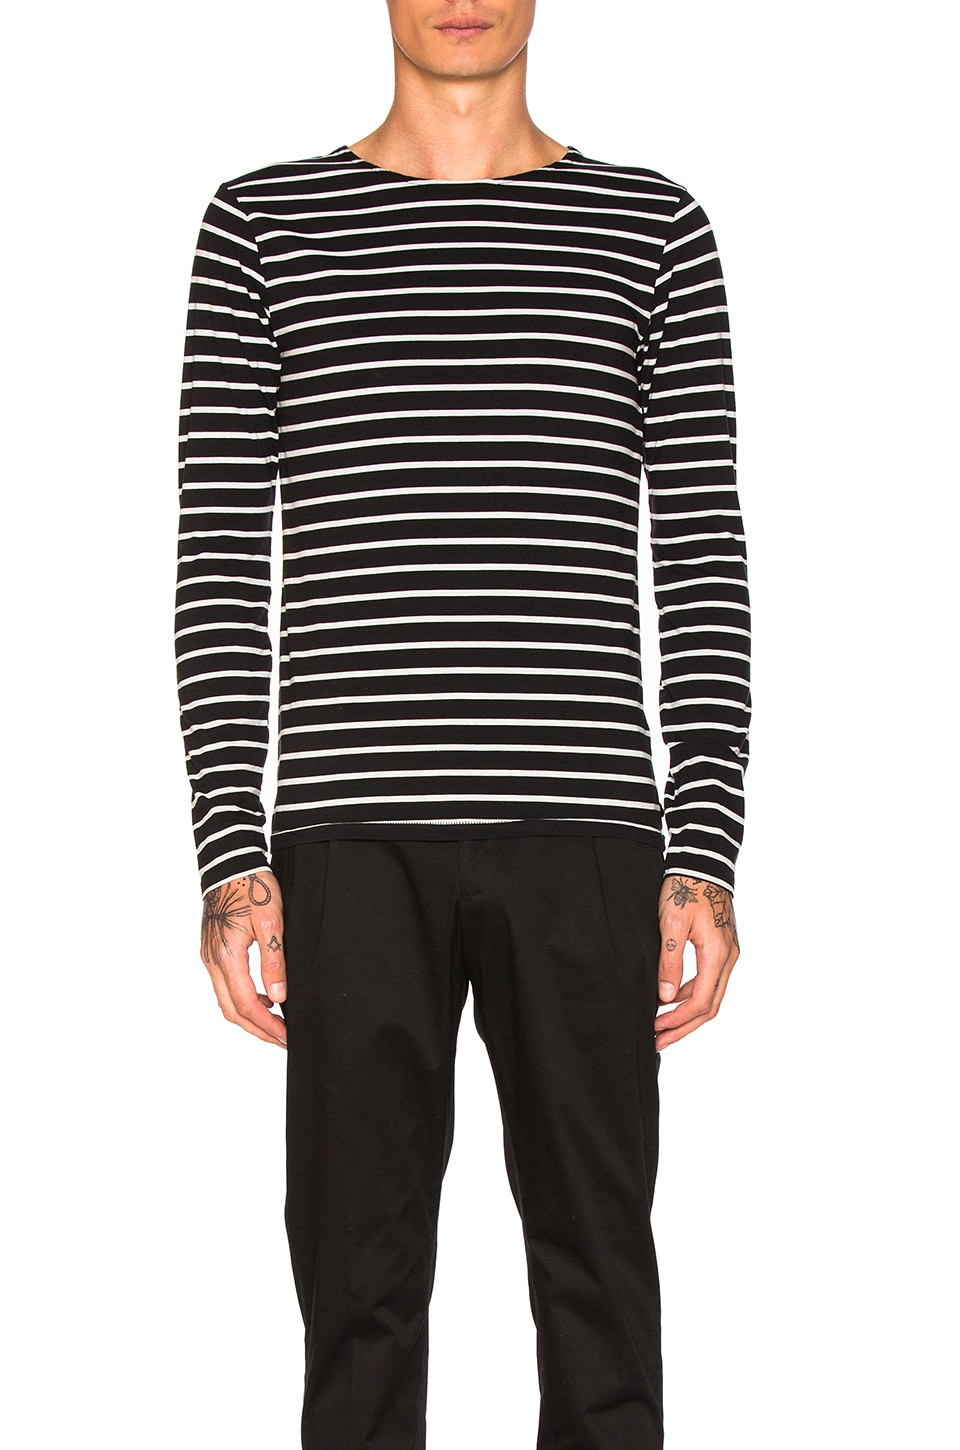 Classic Long Sleeve Tee by Scotch & Soda